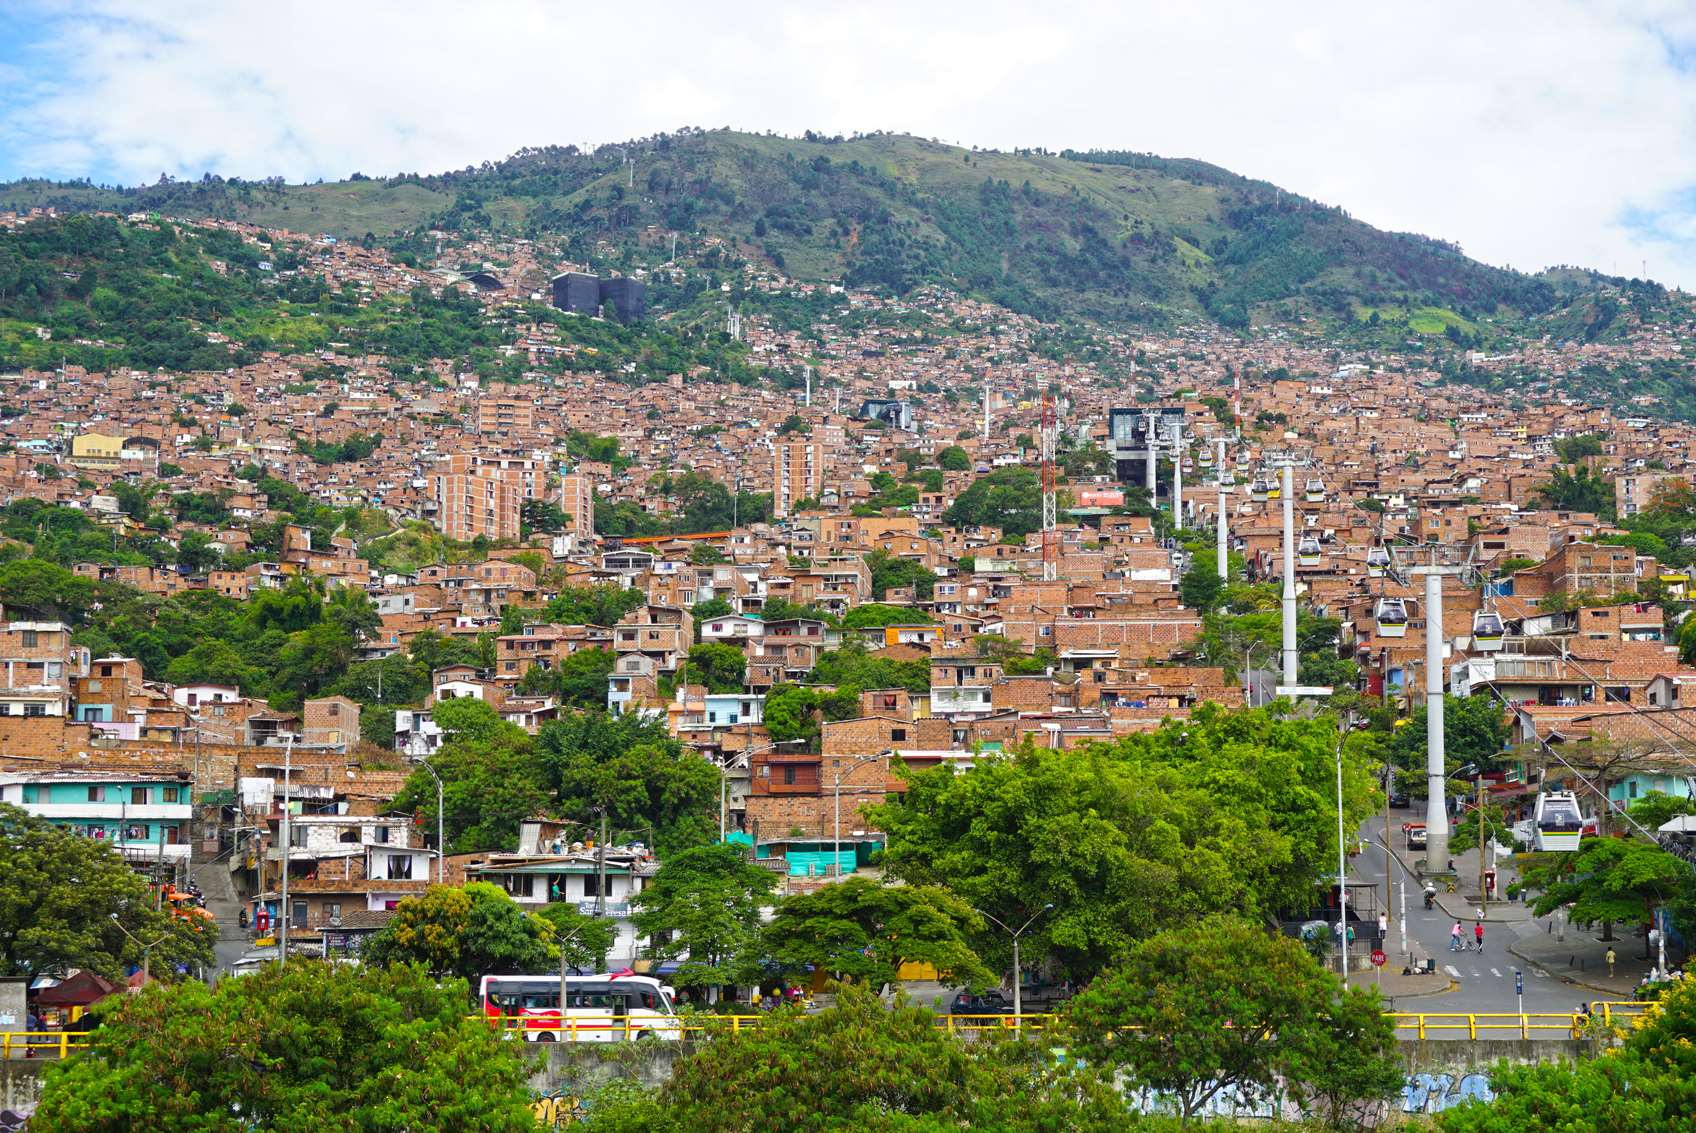 north-part-of-medellin-scene-from-narcos